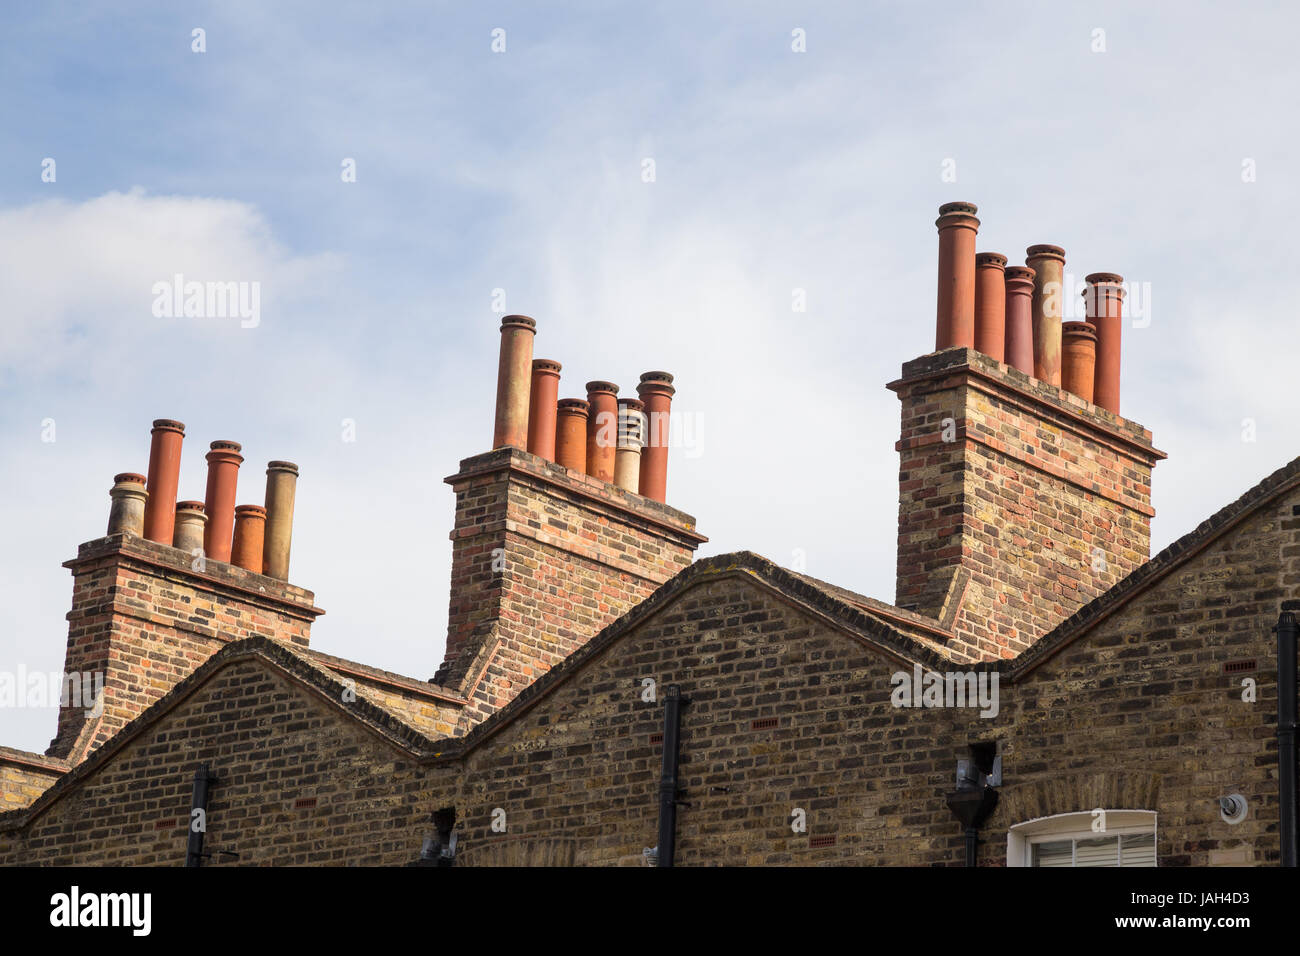 chimneypots on roofs of terraced houses in Islington, London N1, UK - Stock Image